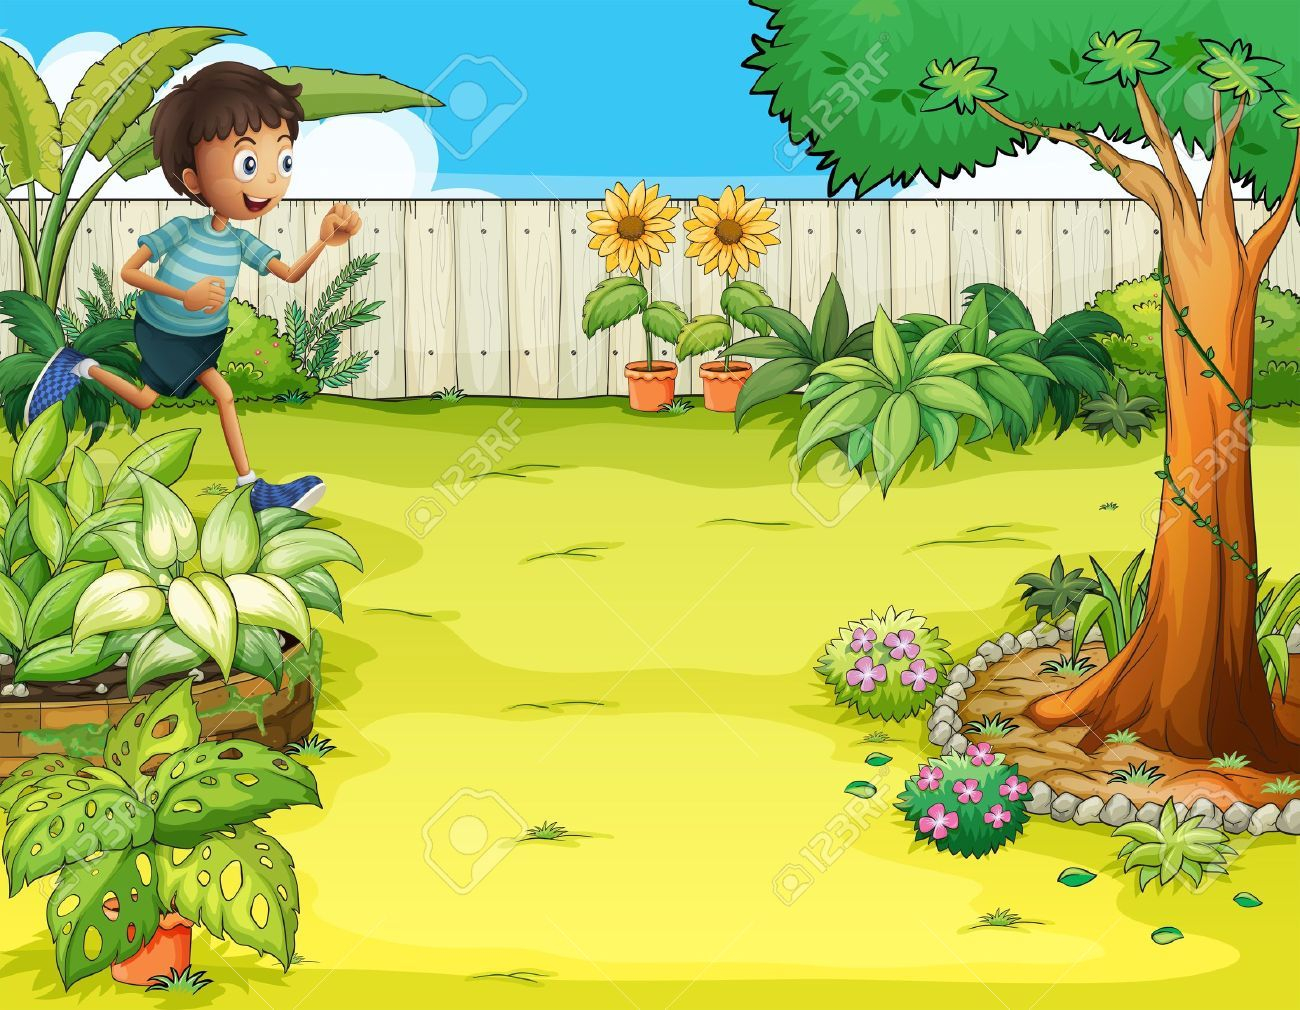 hight resolution of illustration of a boy running at the backyard royalty free cliparts vectors and stock illustration pic 18005070